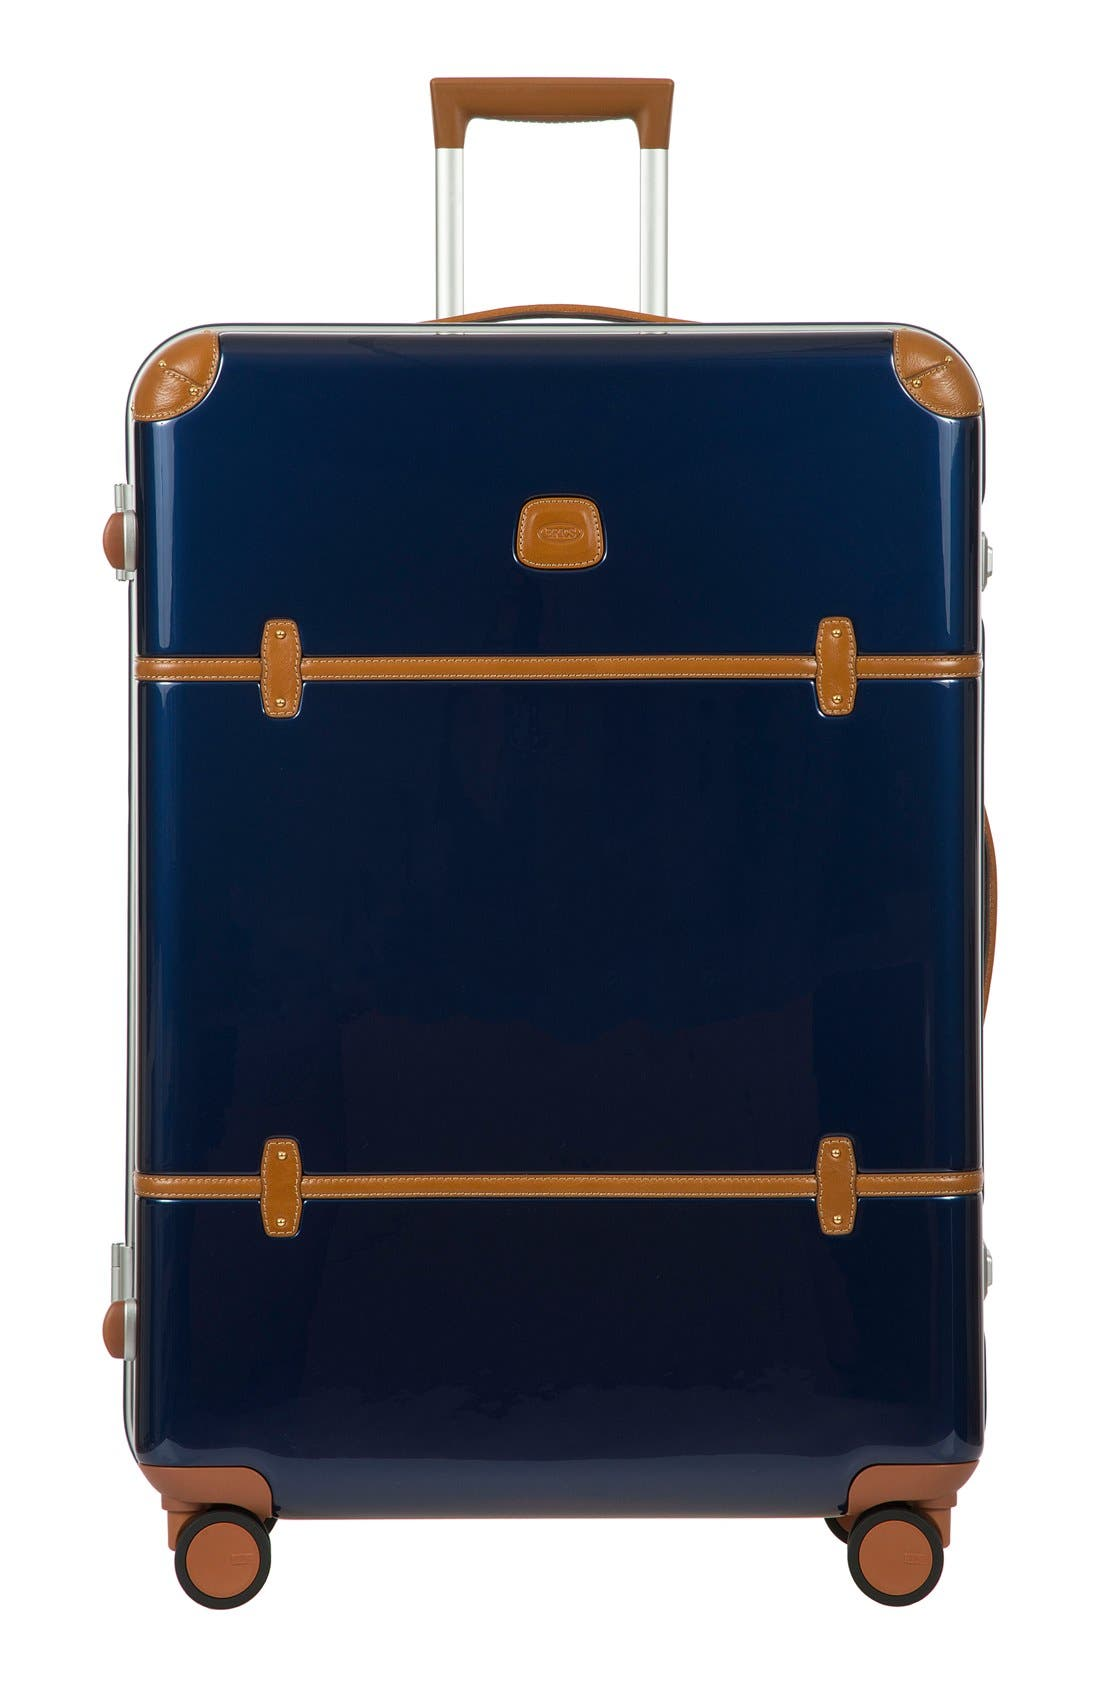 BRICS Bellagio Metallo 2.0 32 Inch Rolling Suitcase